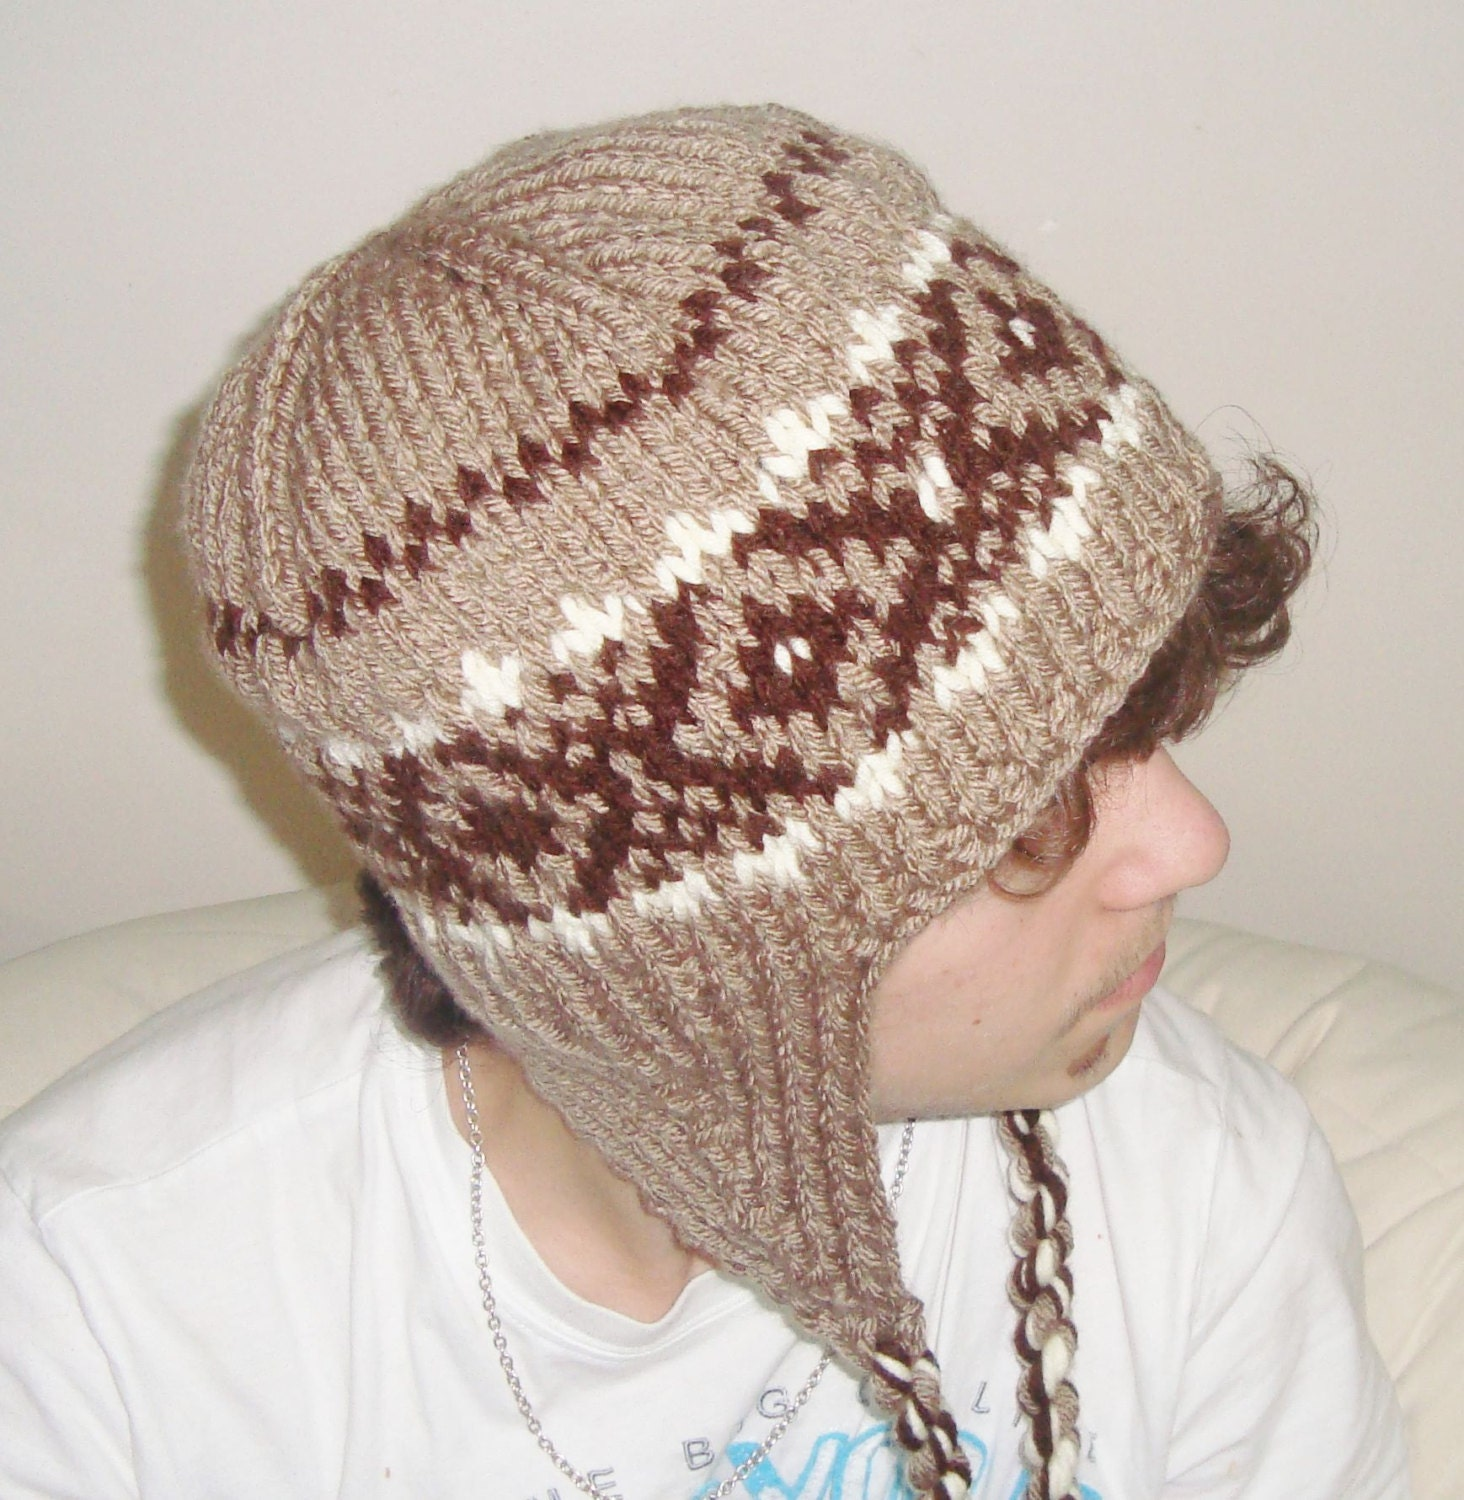 Knitting Pattern For Mens Hat With Ear Flaps : Knit Hat Mens Hat Knit Winter Ear Flap Hat Tassel Hat in